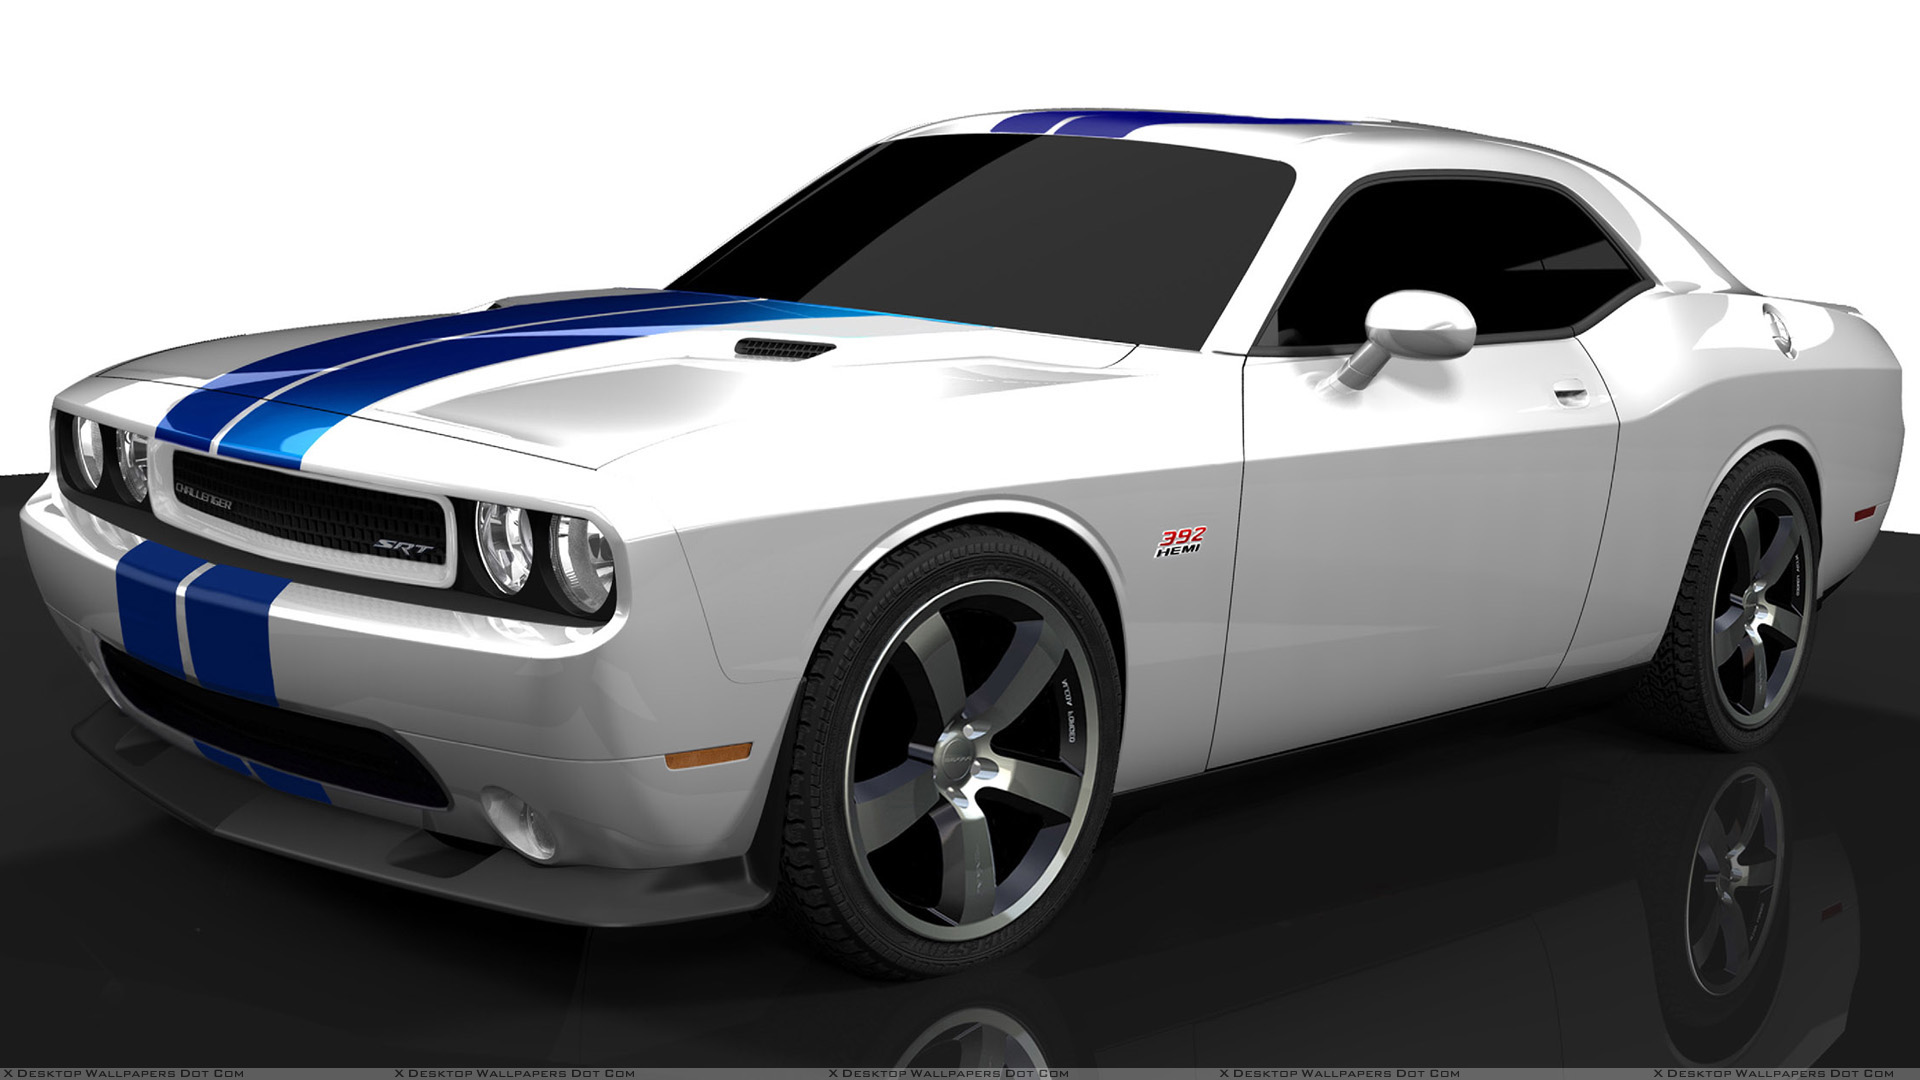 2011 dodge challenger srt8 in white side pose wallpaper